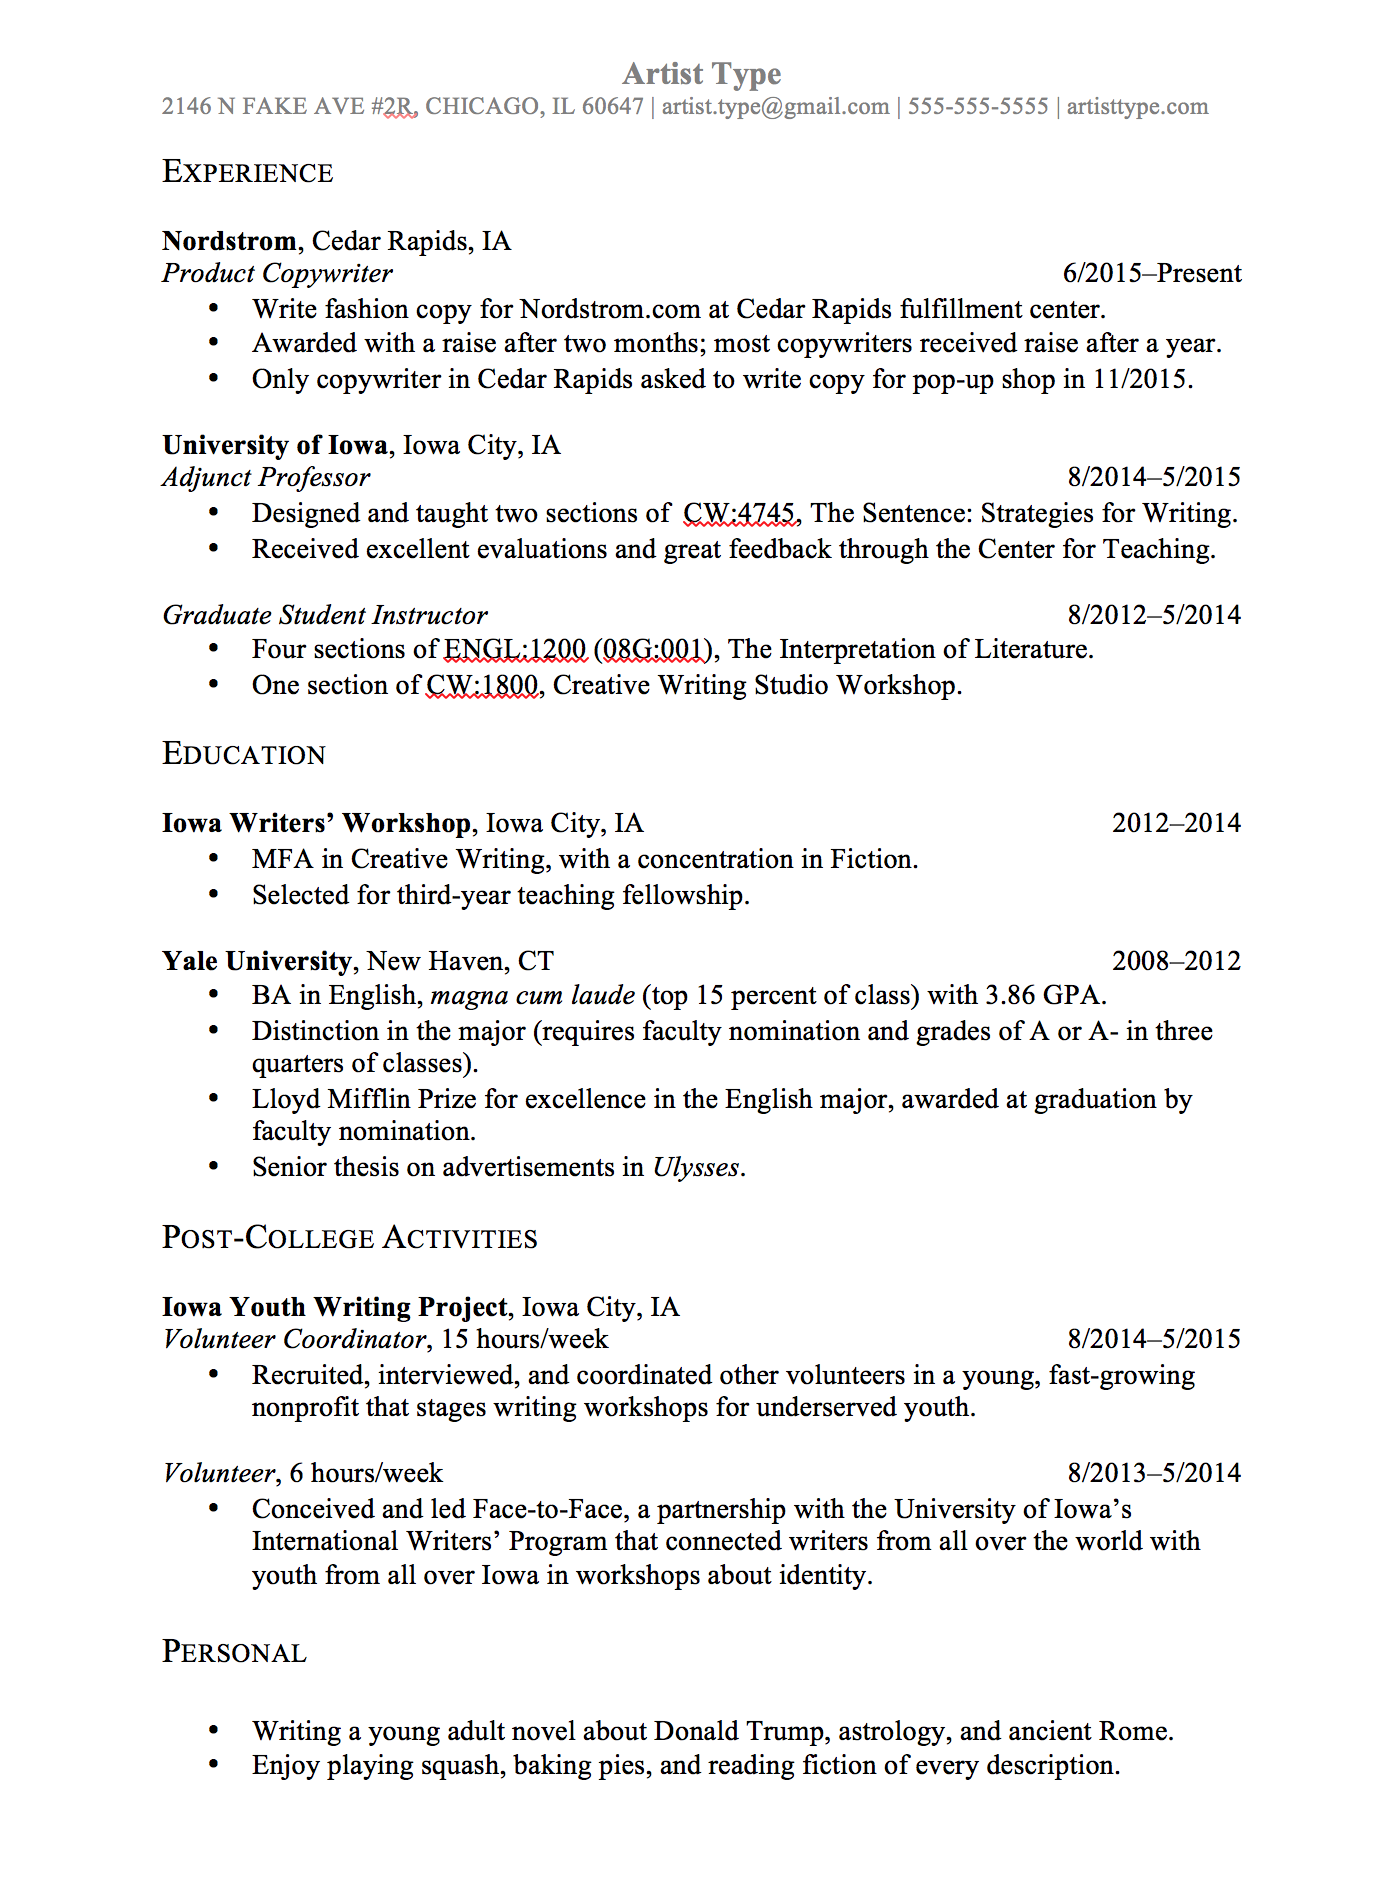 Resume Template For Law School Admissions